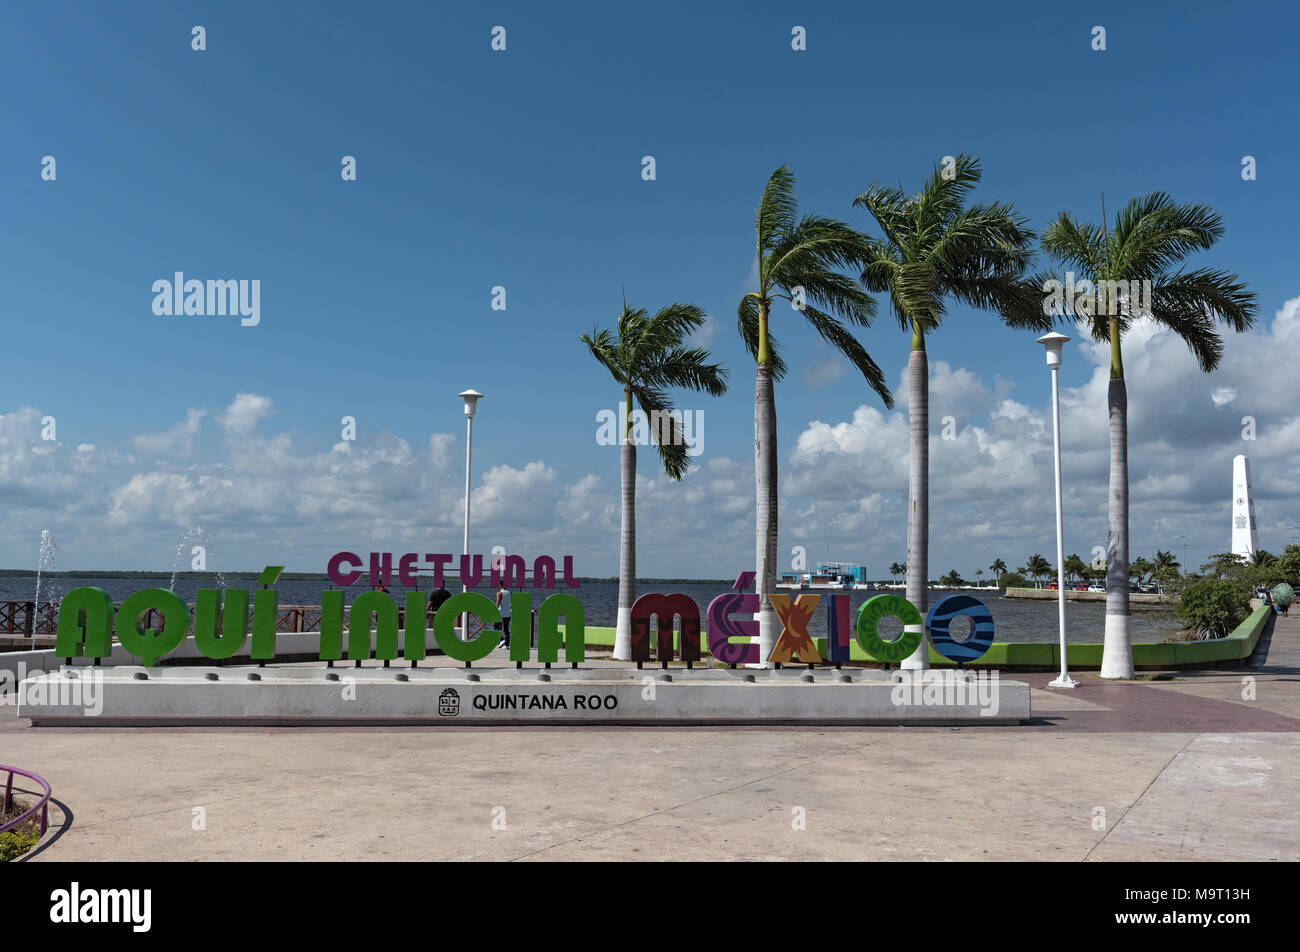 Colored lettering of the Mexican city of Chetumal, Quintana Roo - Stock Image